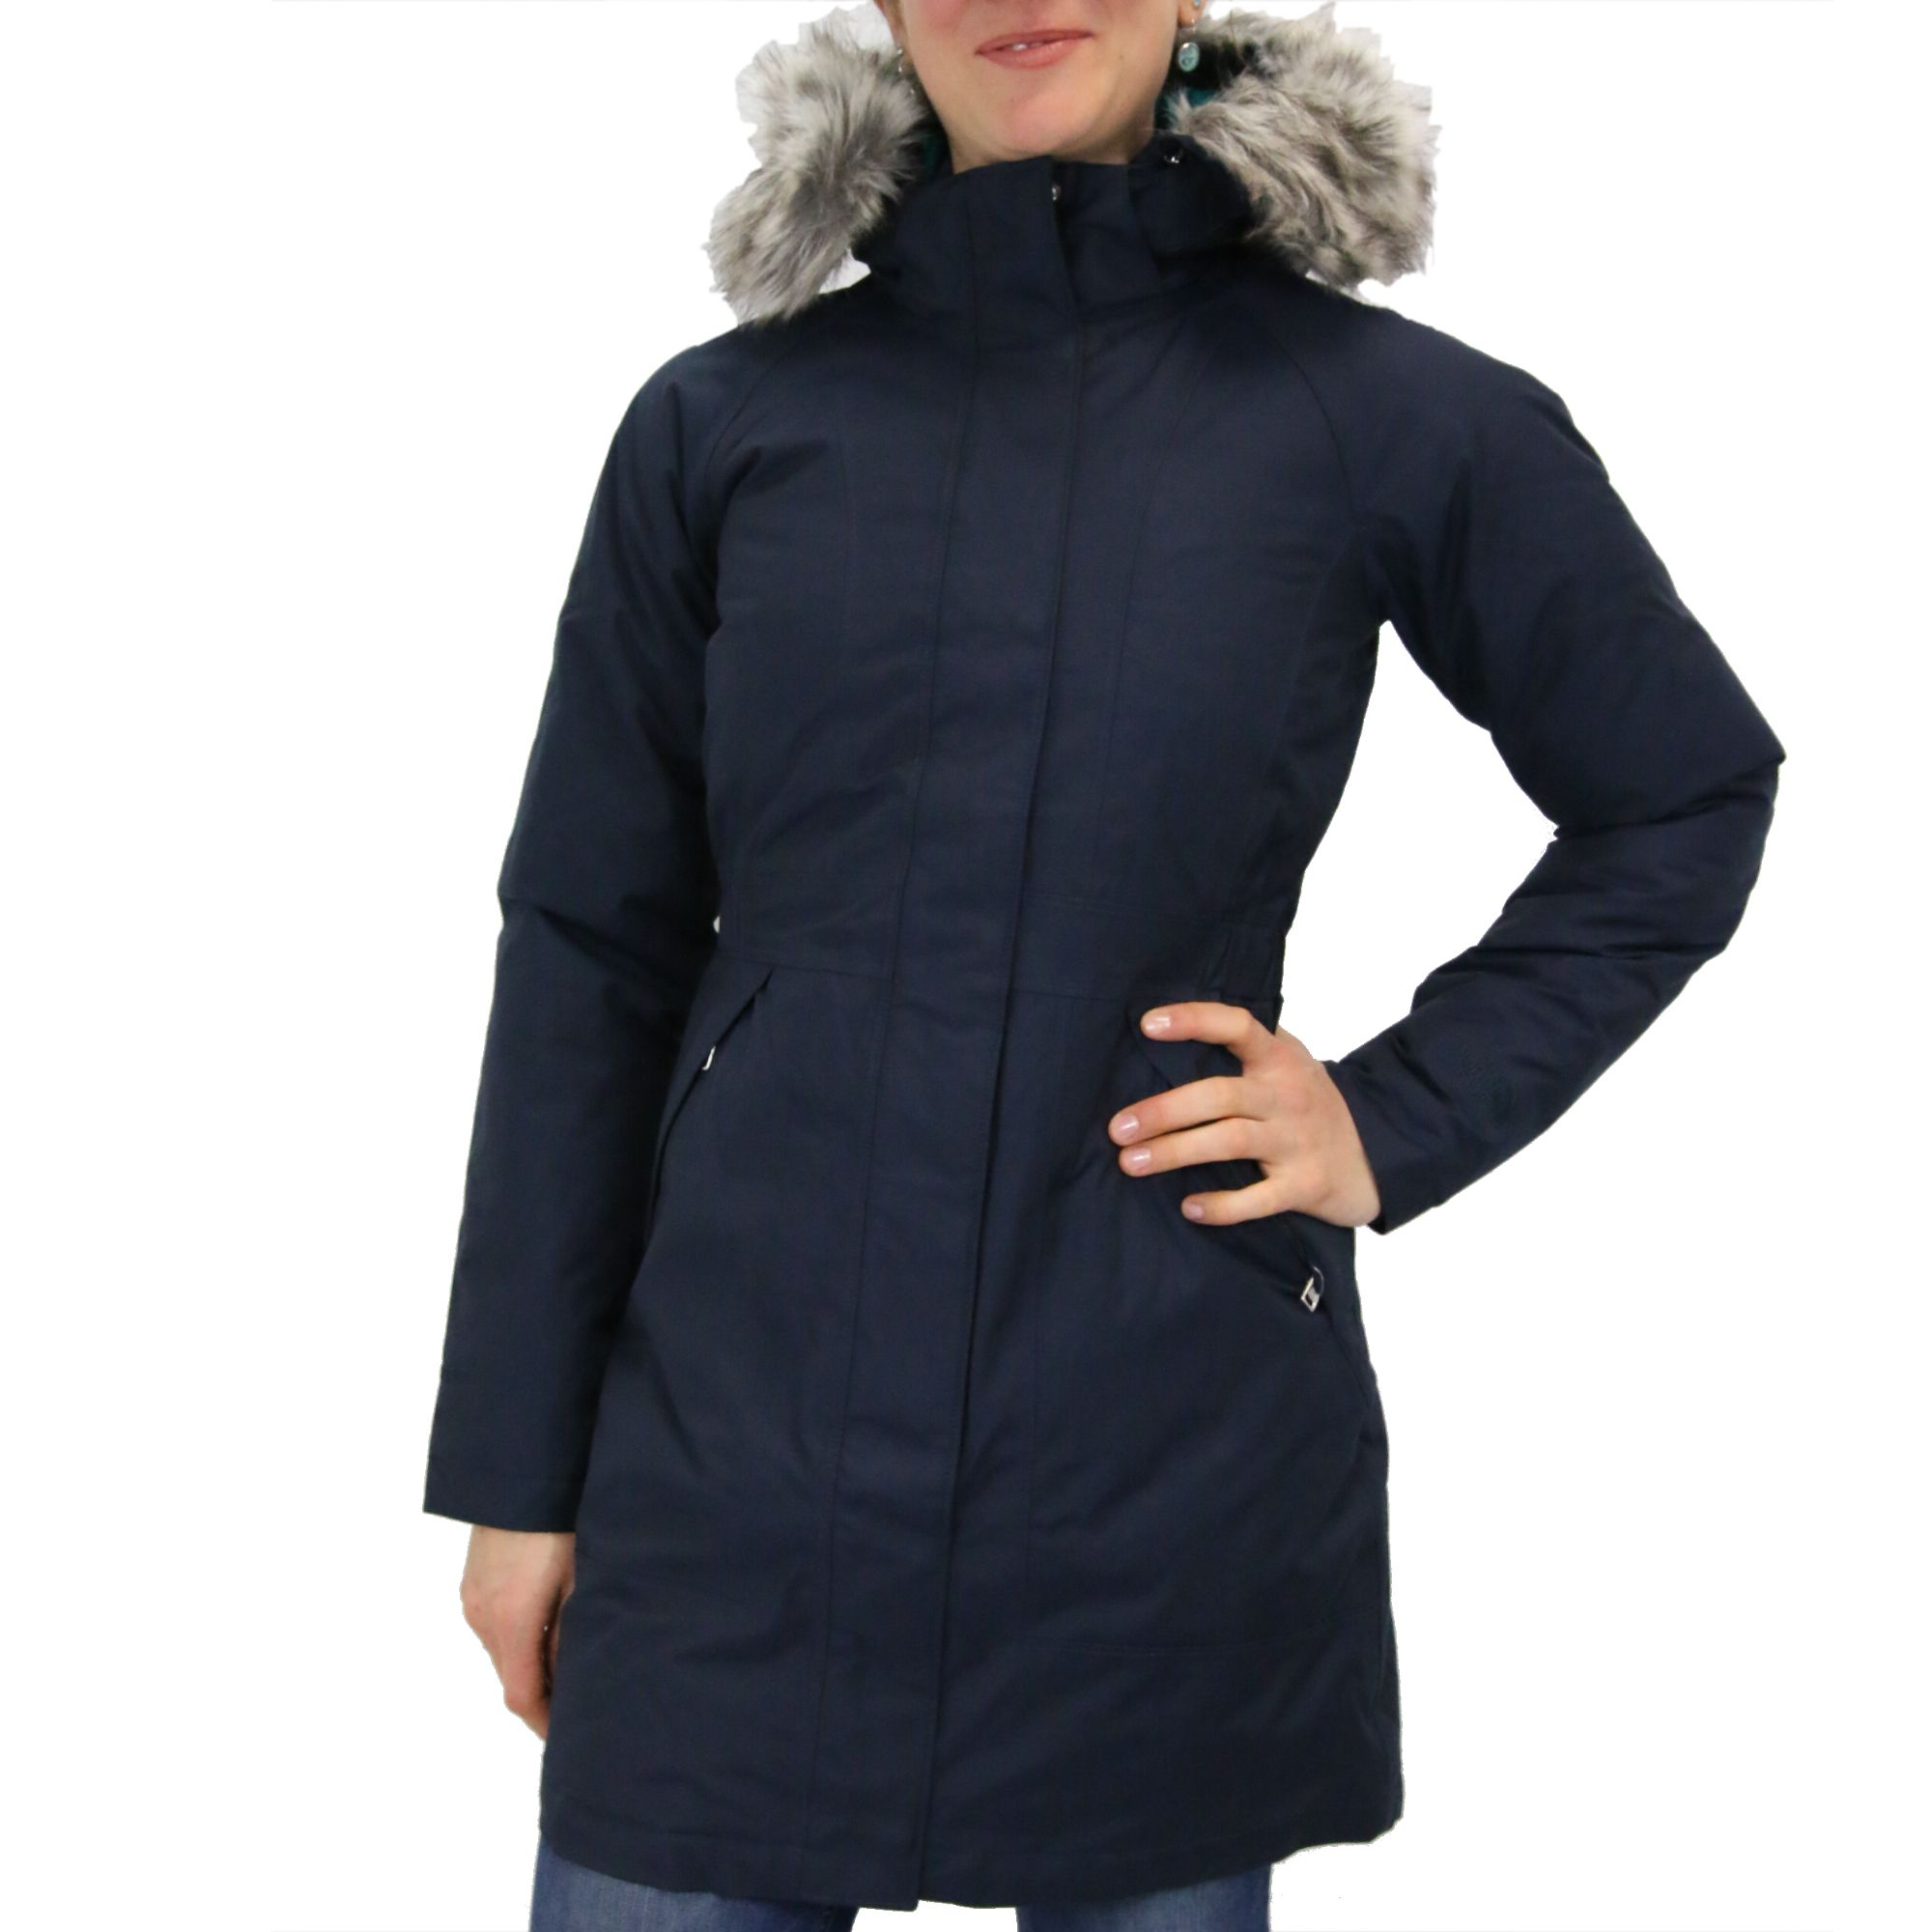 The North Face Parka Mantel >> The North Face Arctic Parka Jacke Mantel Winterjacke Daunenjacke 550 cuin Damen | eBay